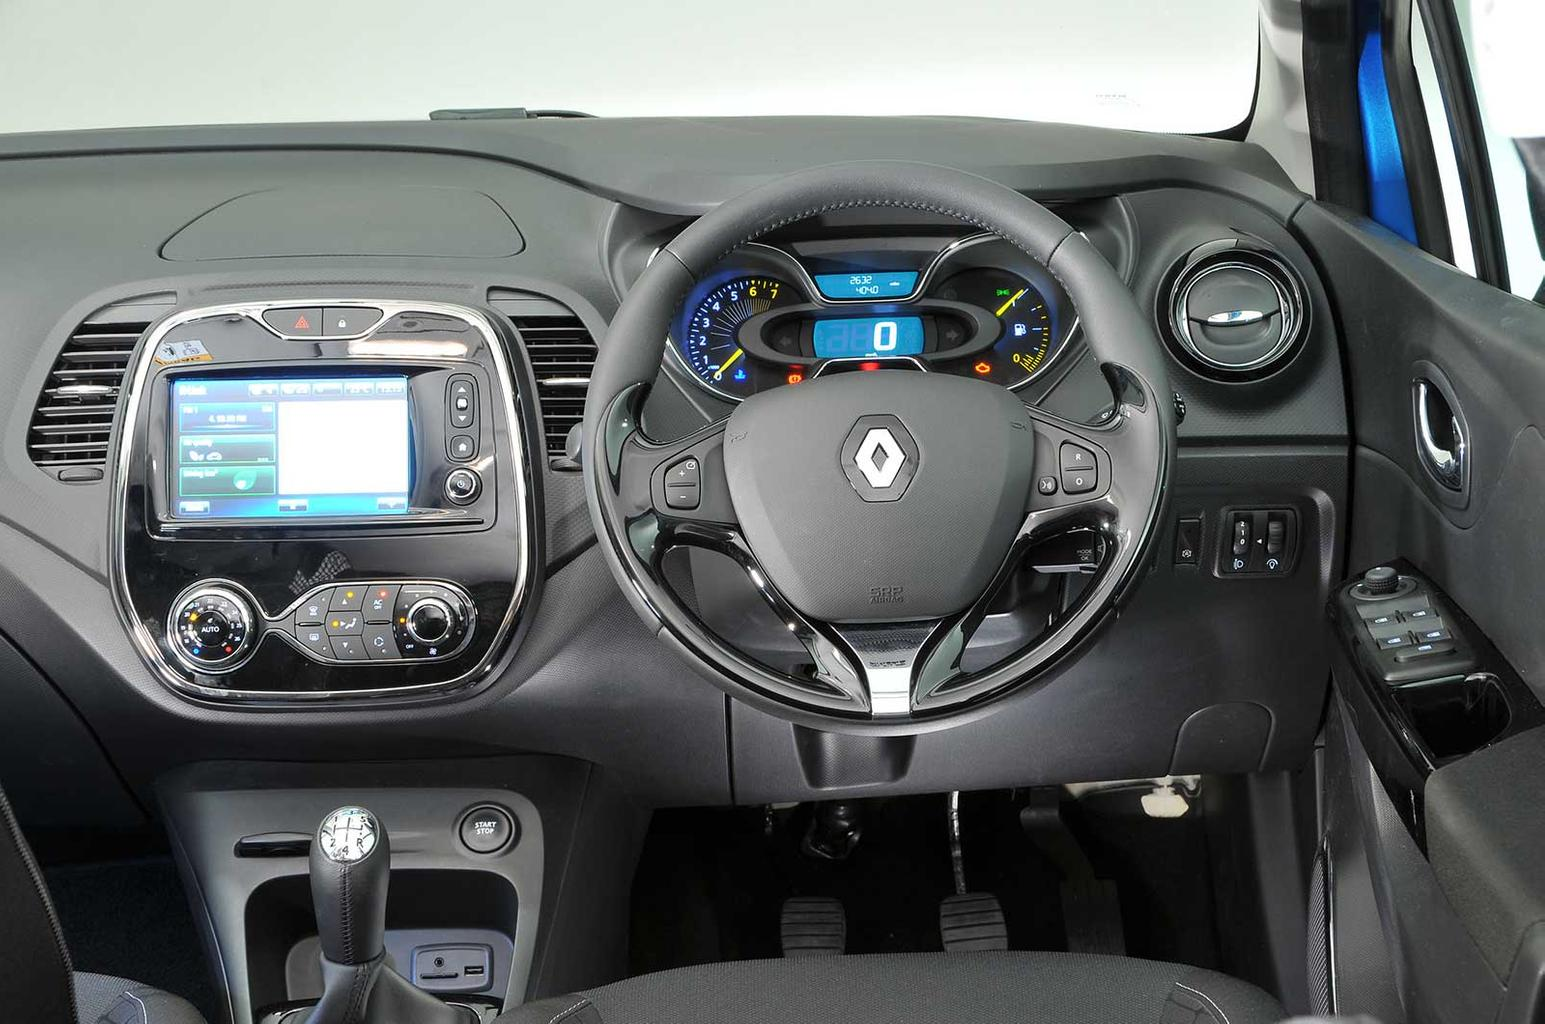 New car deal of the day: Renault Captur